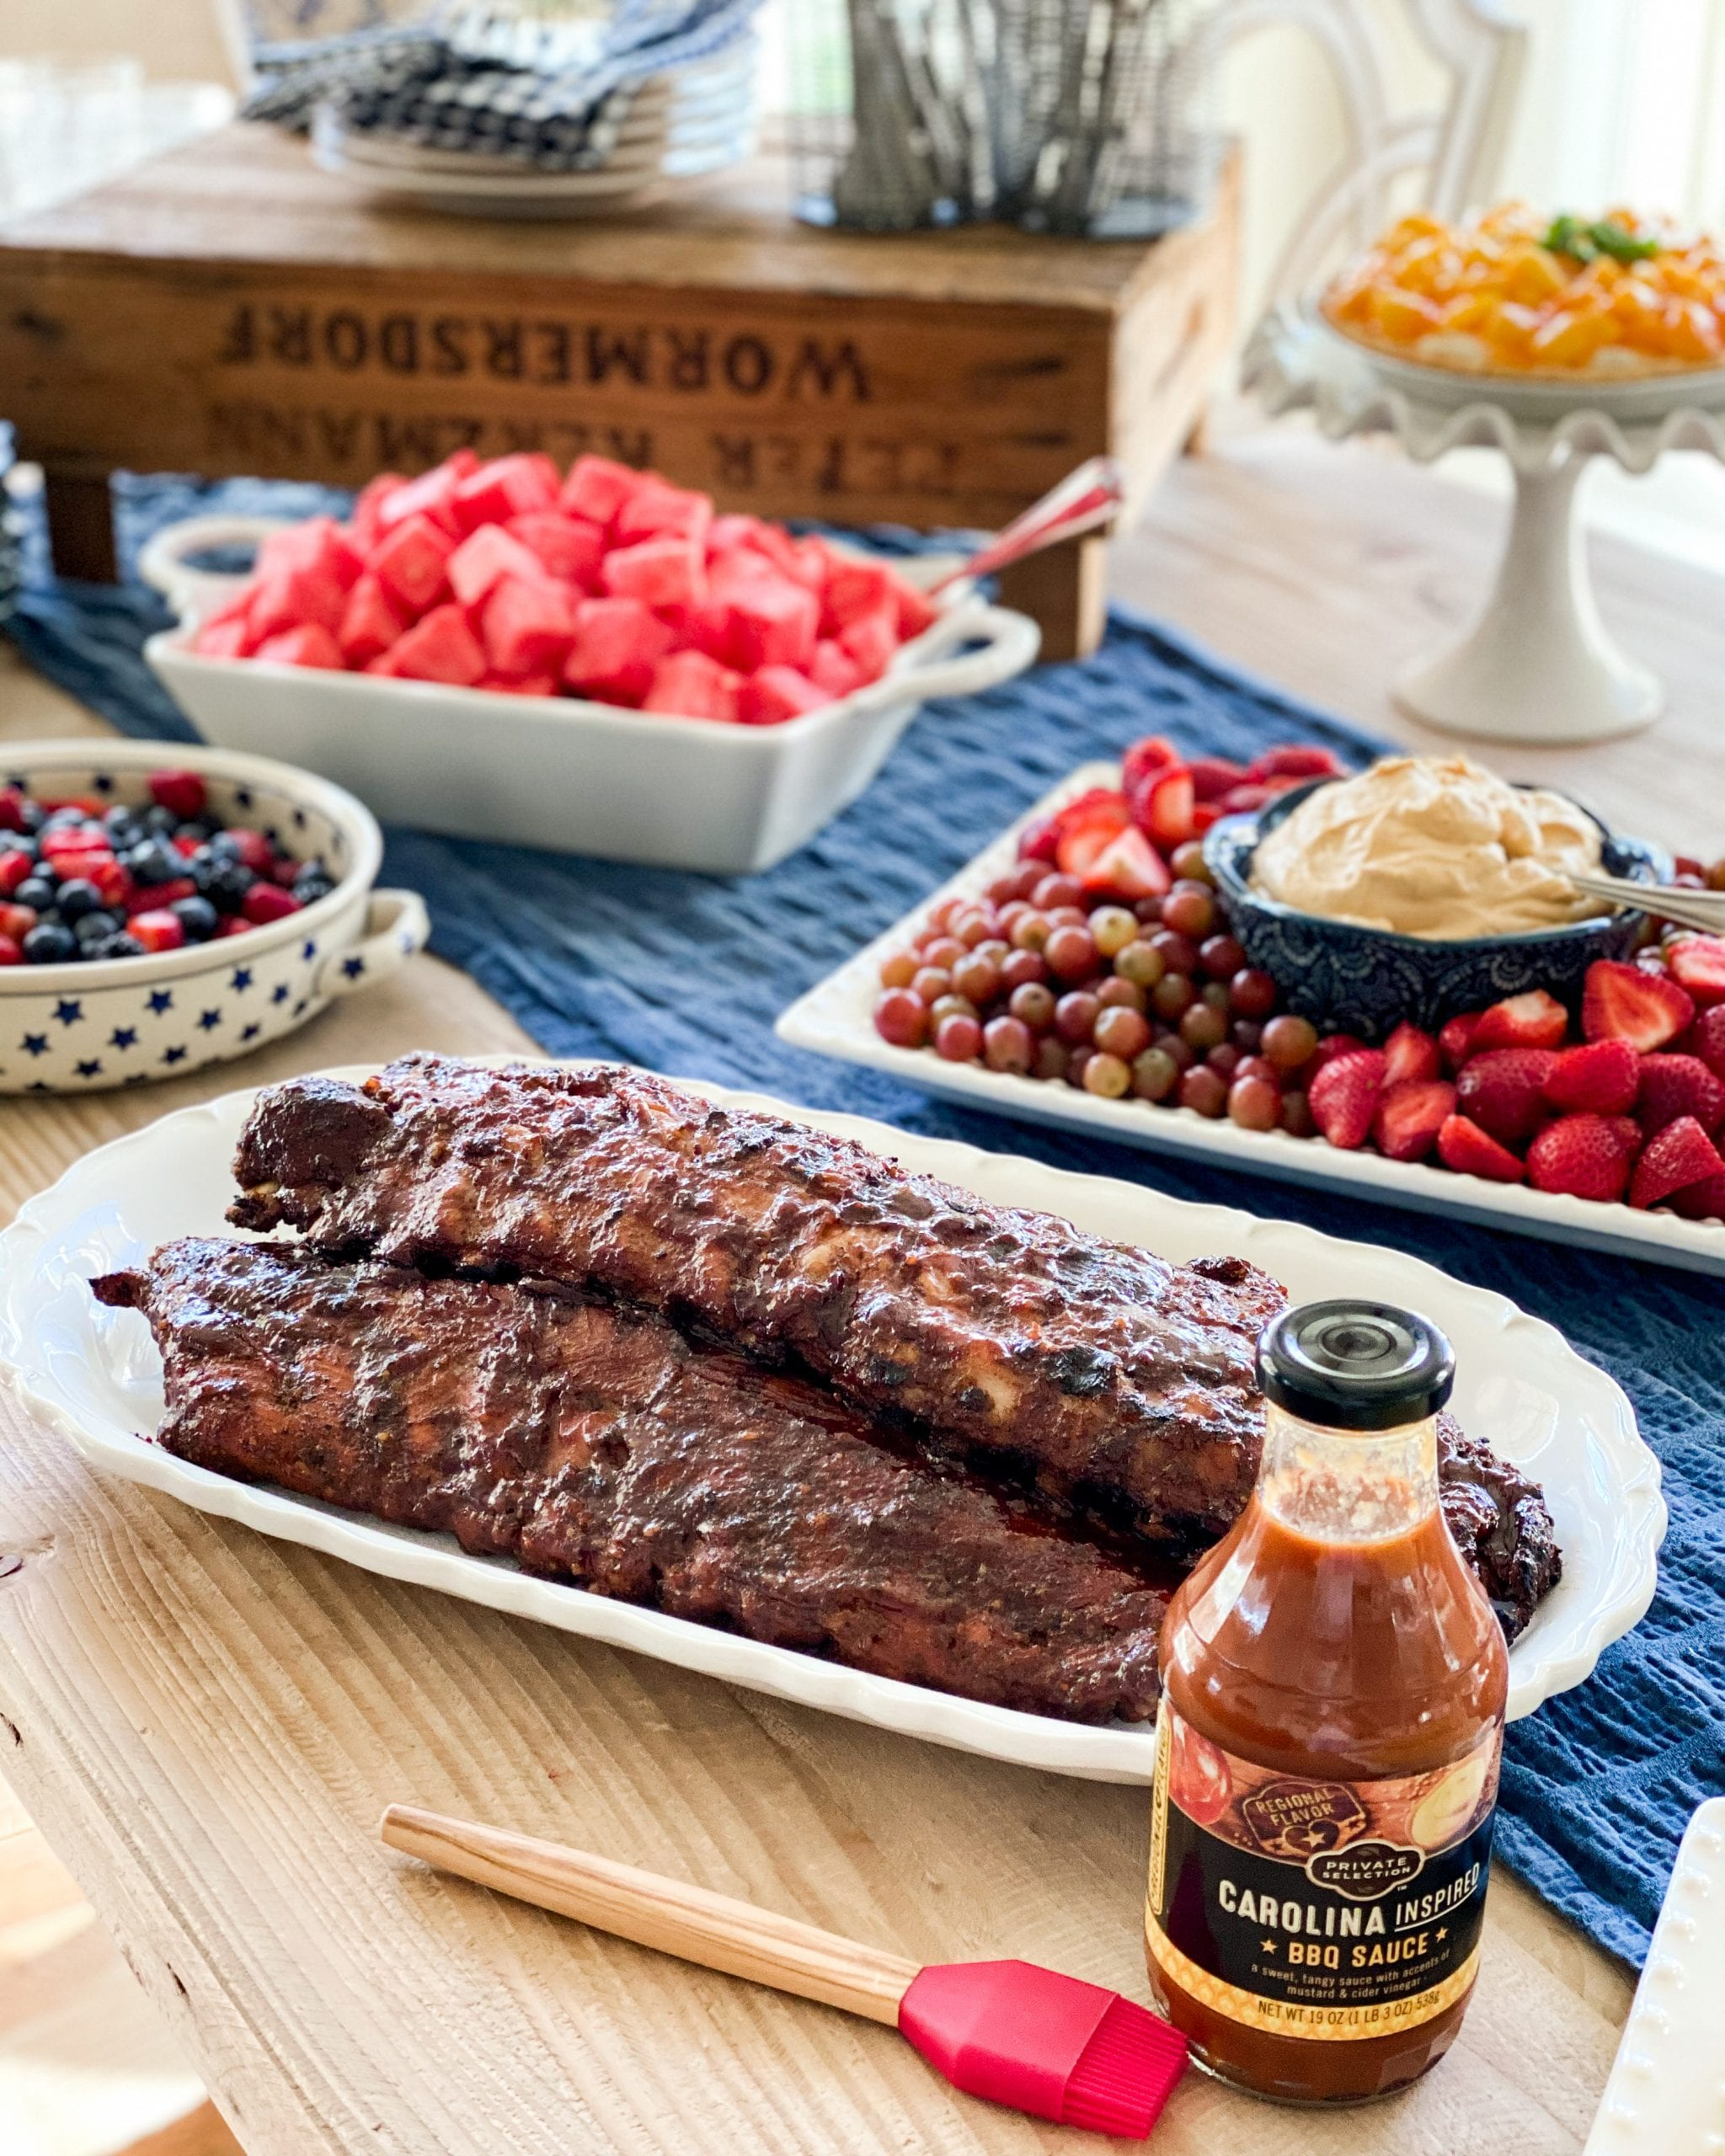 private selection Fred Meyer Kroger brand summer barbecue recipes